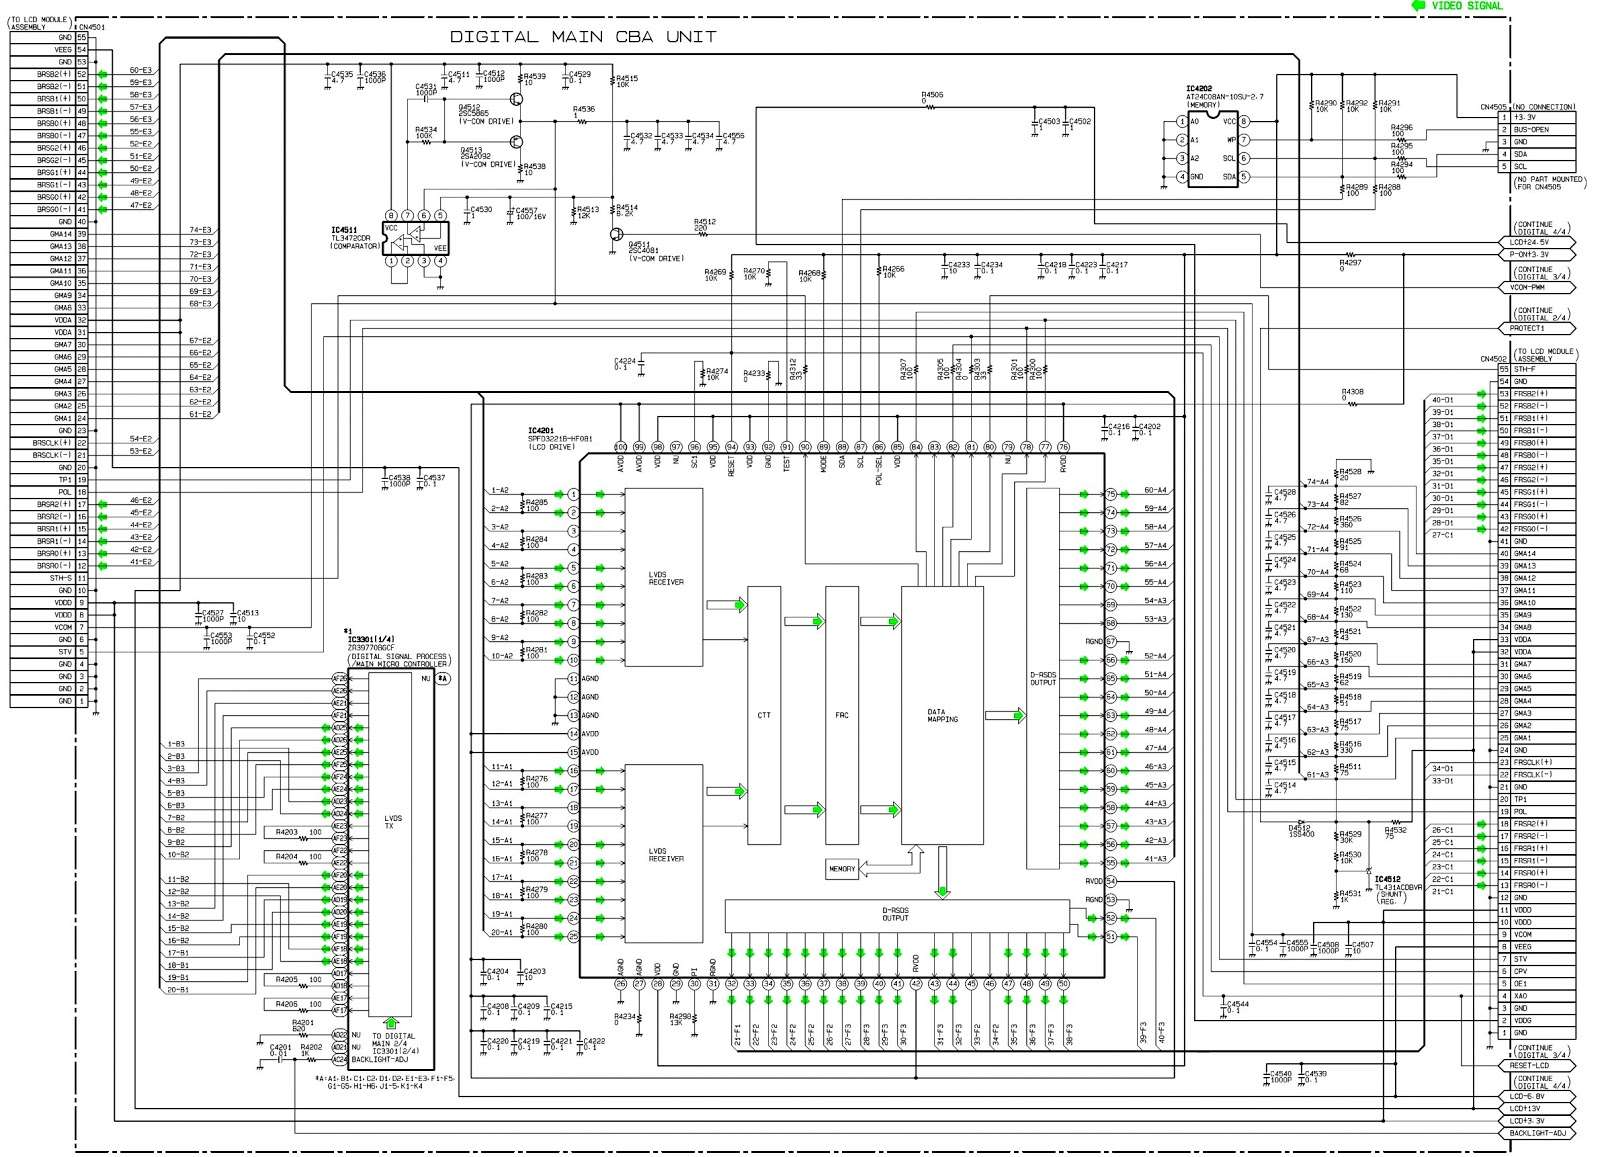 Vestel 17ips20 Power Board Circuit moreover Samsung Lcd Tv Backlight Inverter Schematic together with Function Generator With Xr2206 furthermore Sylvania Funai Lc195sl9 B 19 Inch Lcd likewise Girls Swings Sky. on tv circuit board schematics